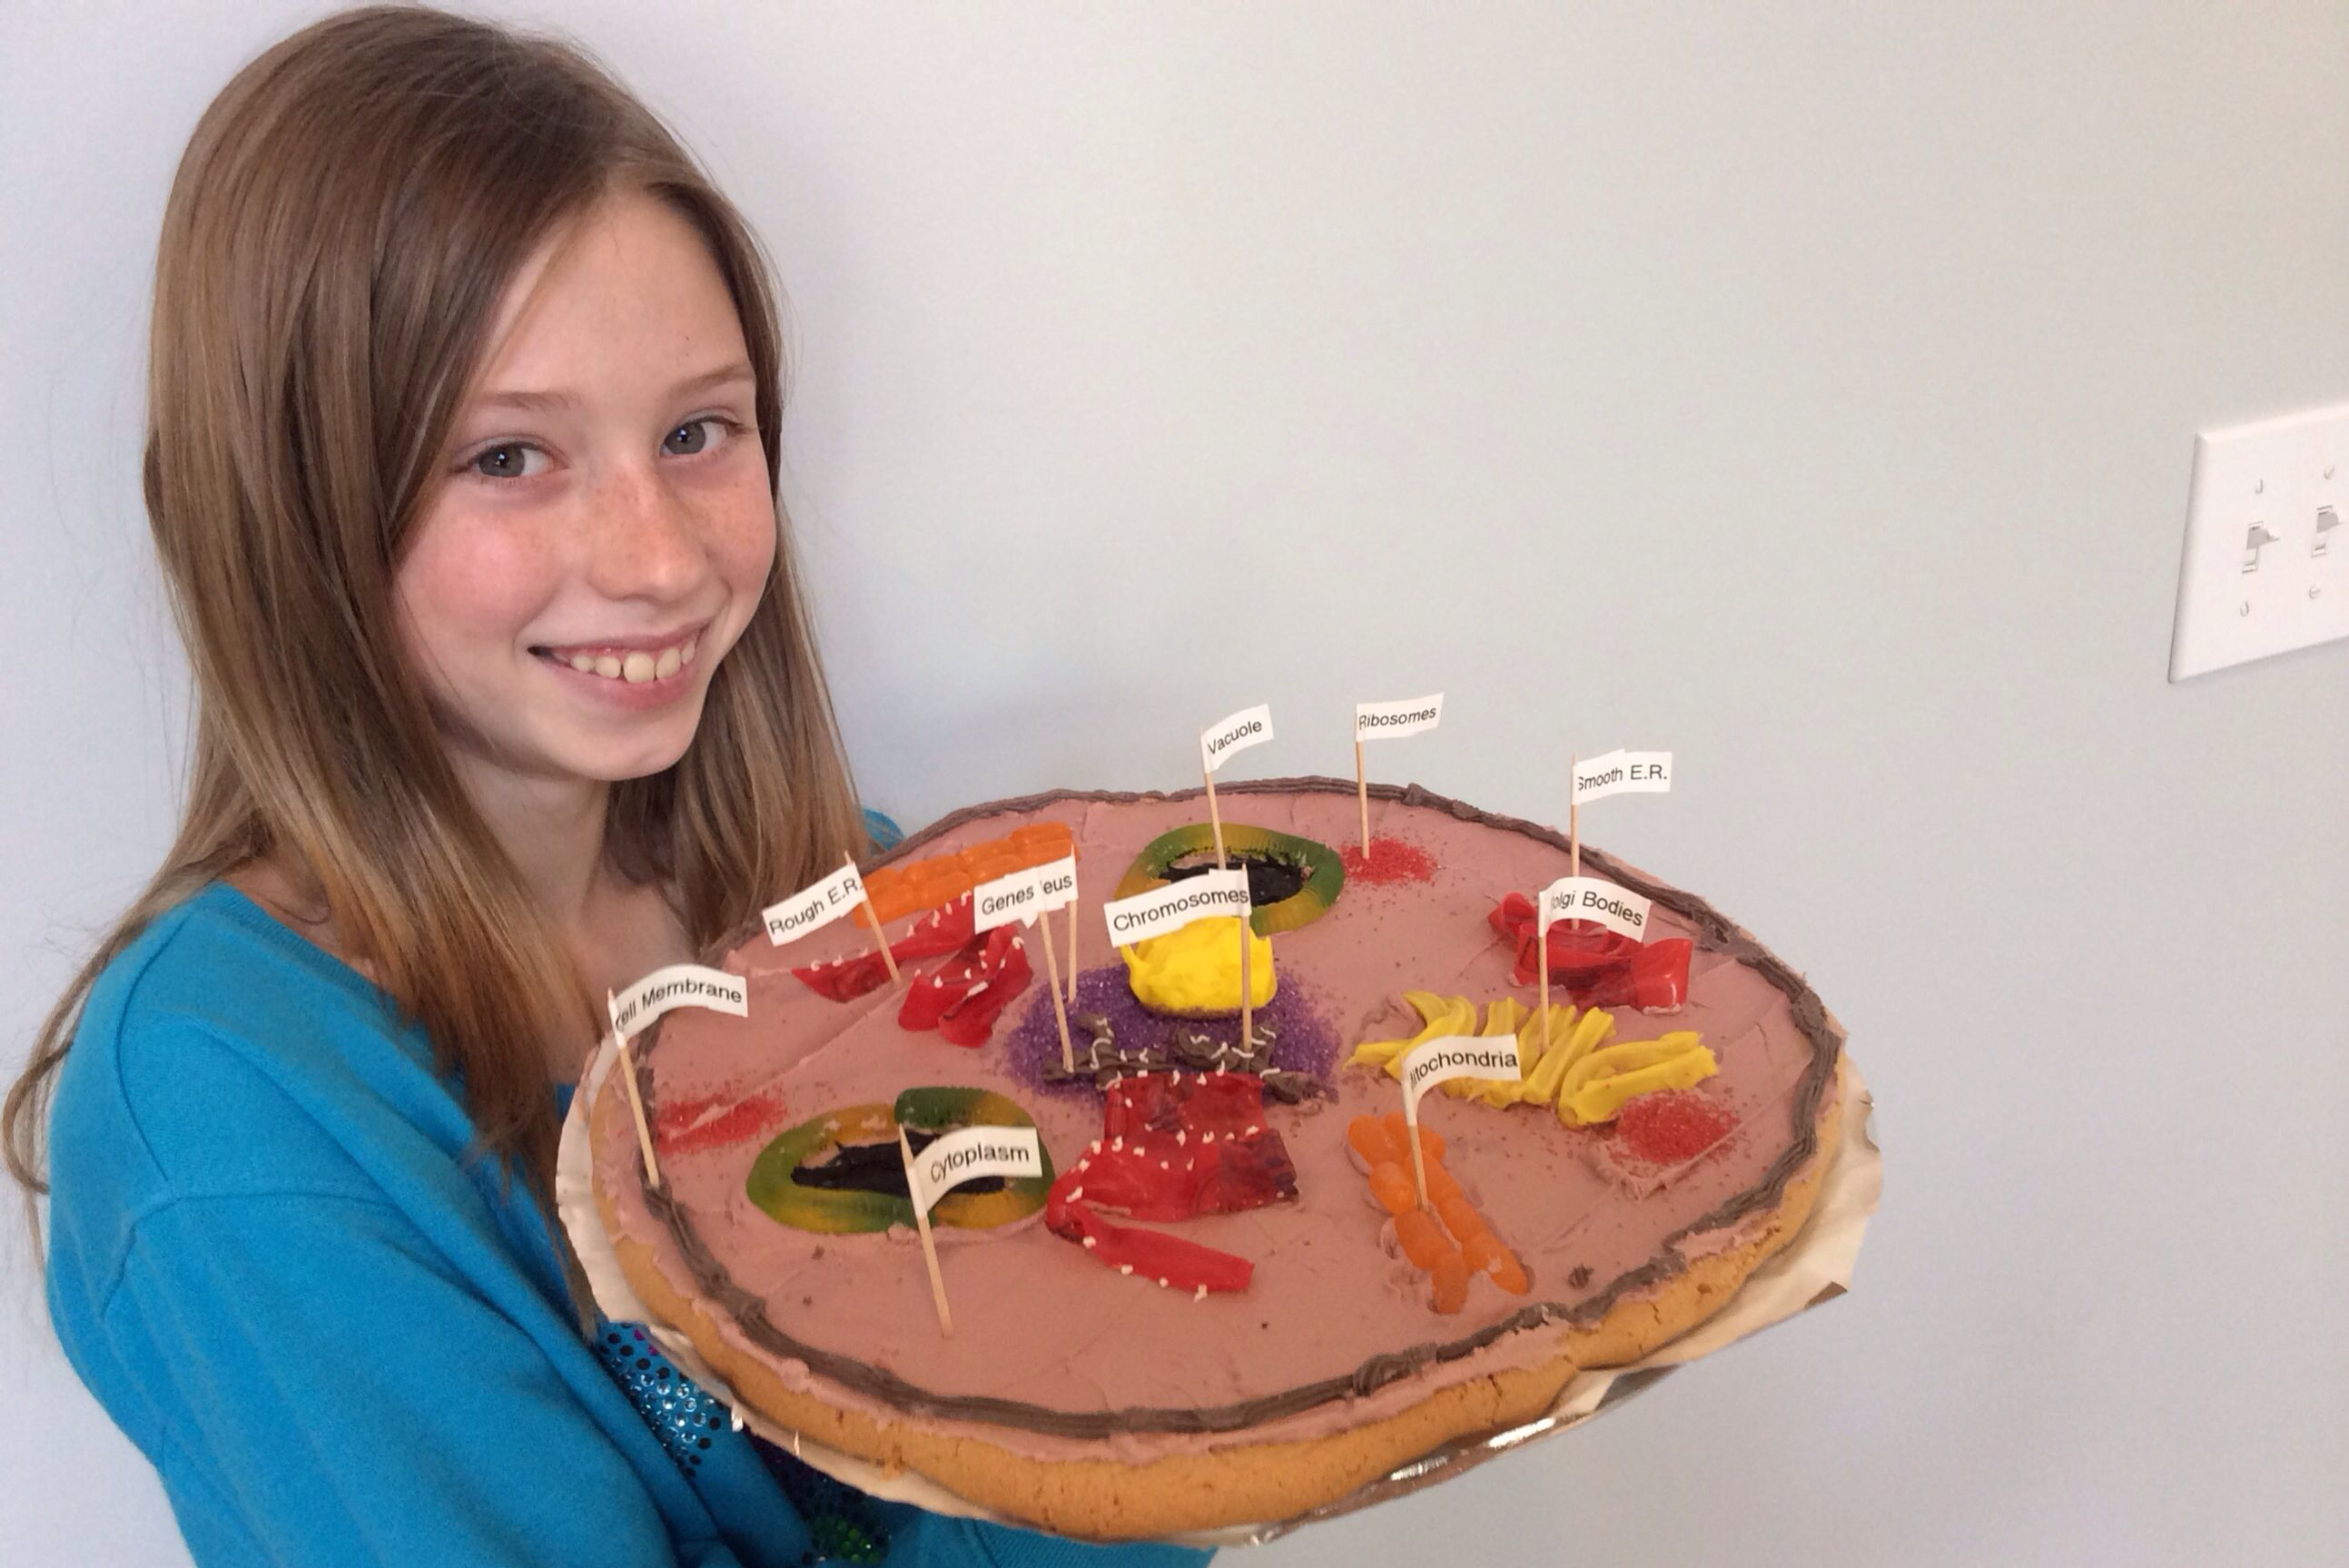 Animal Cell Model (edible) - 5th grade | Projects for kids ...